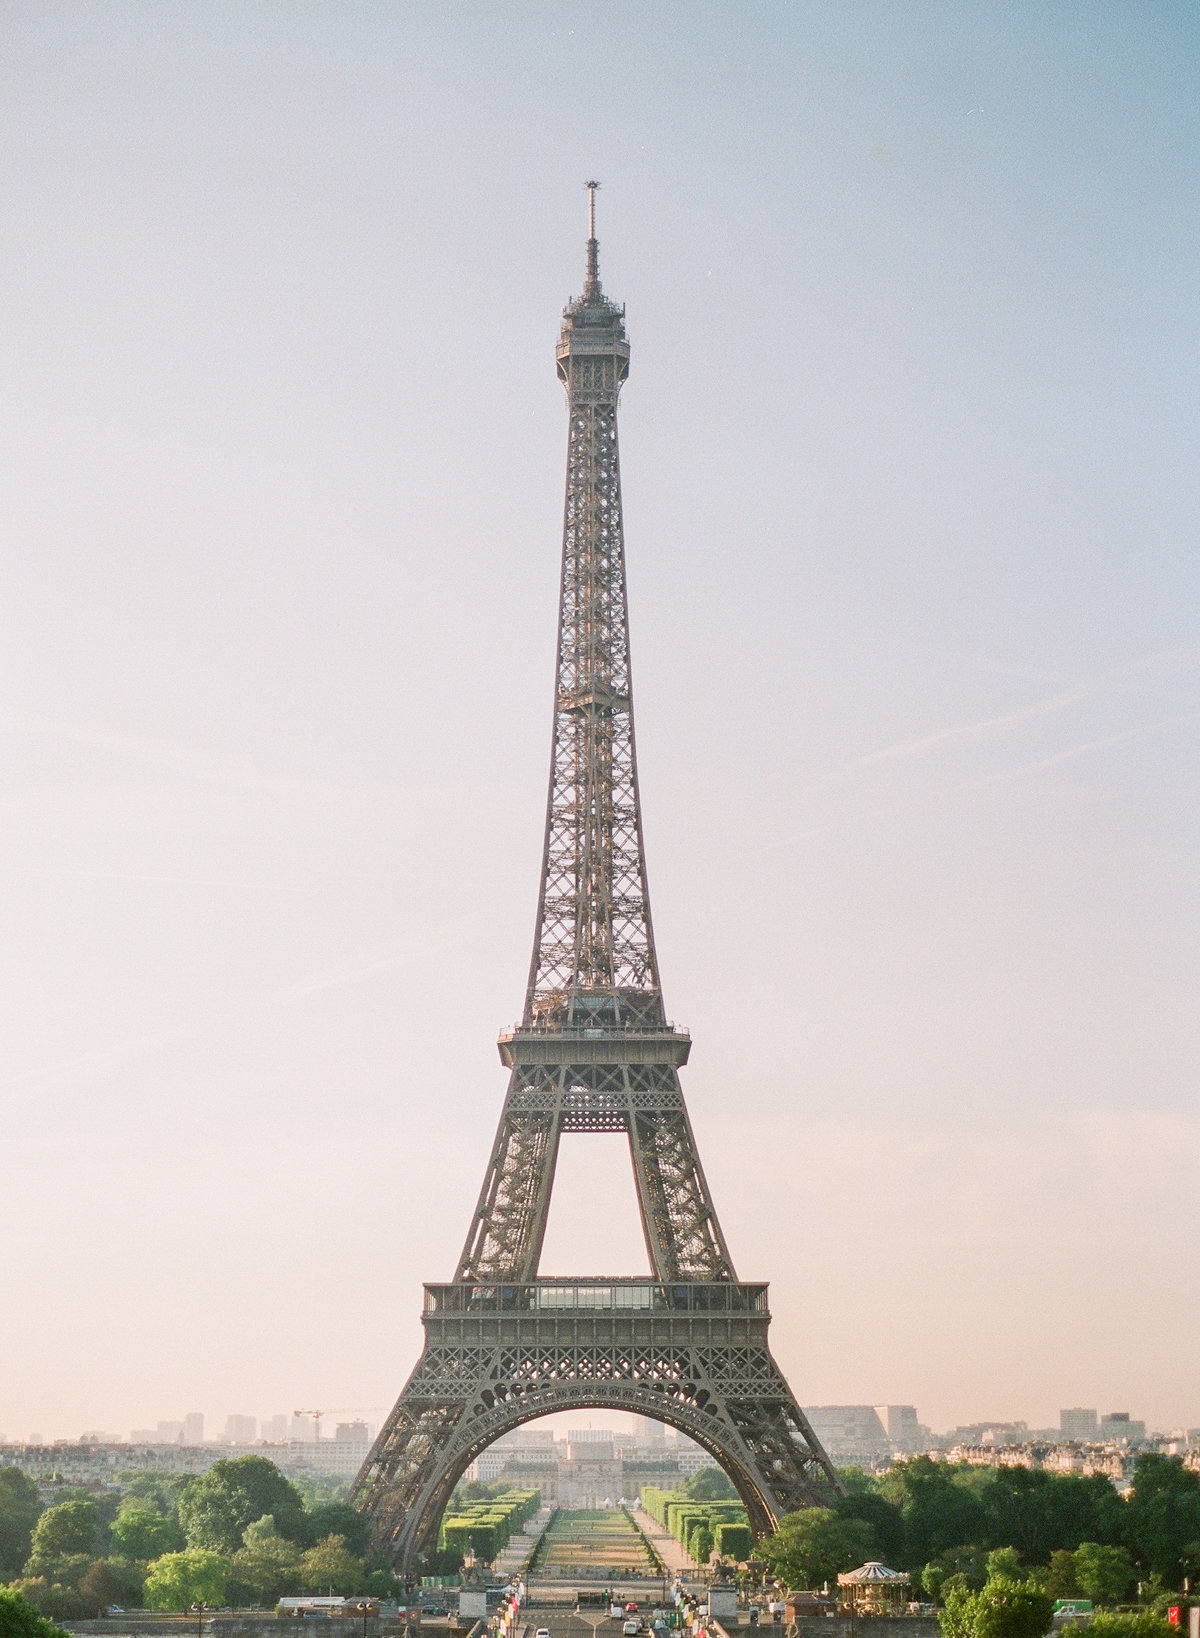 Paris-Wedding-Photographer-Film-Photographer-France-Molly-Carr-Photography-30